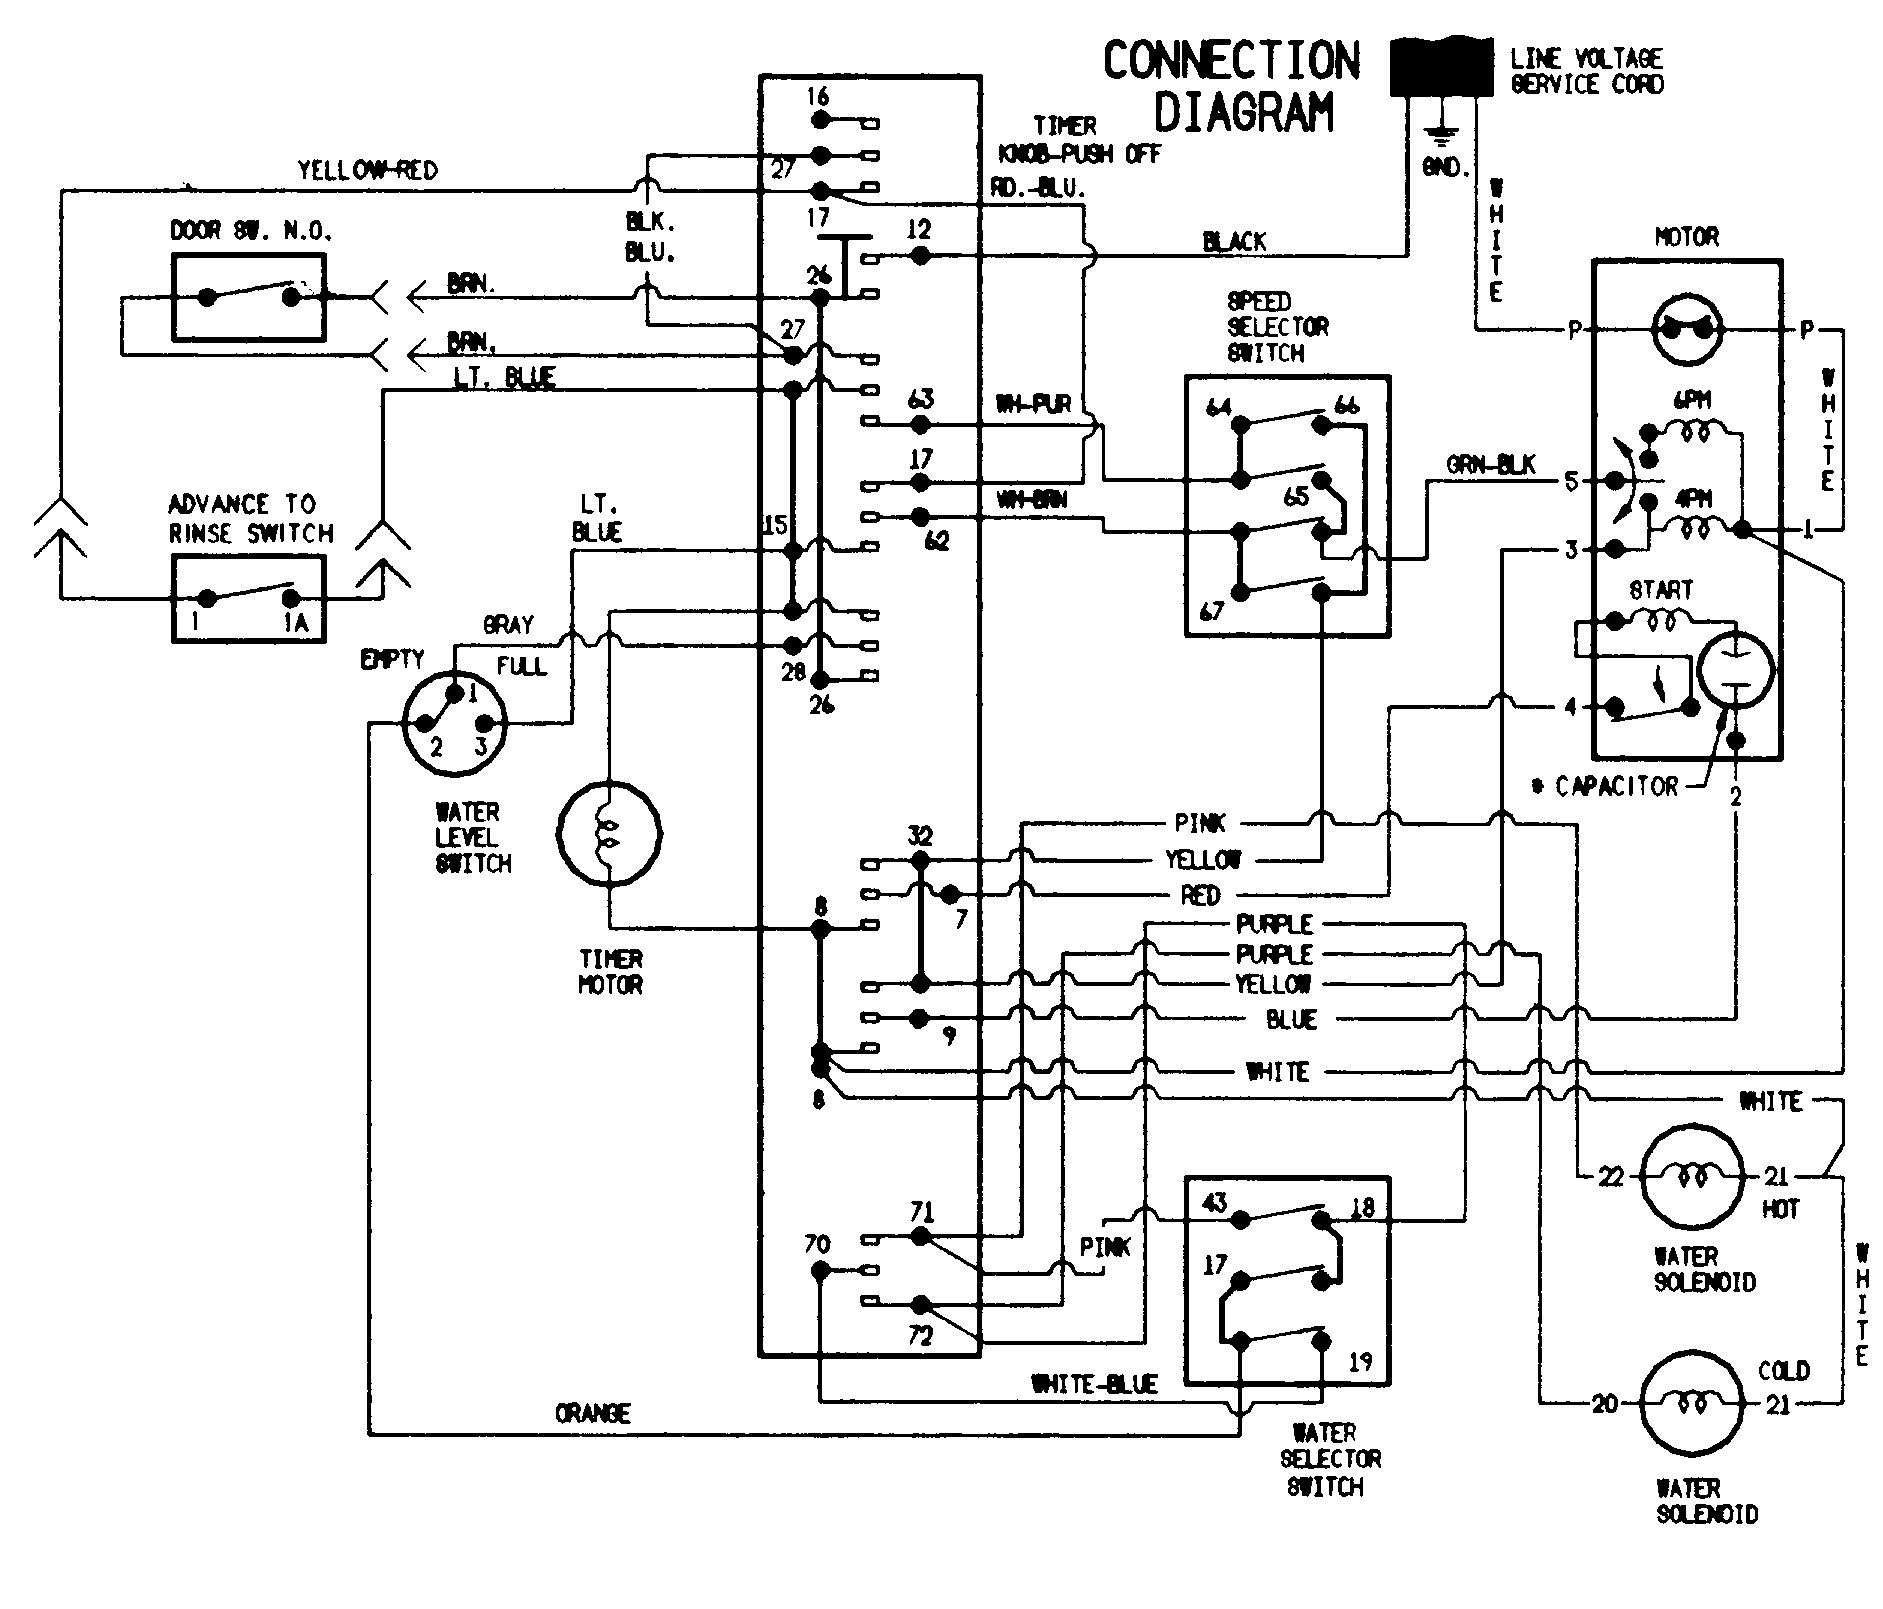 Wiring Diagram For Maytag Performa Dryer